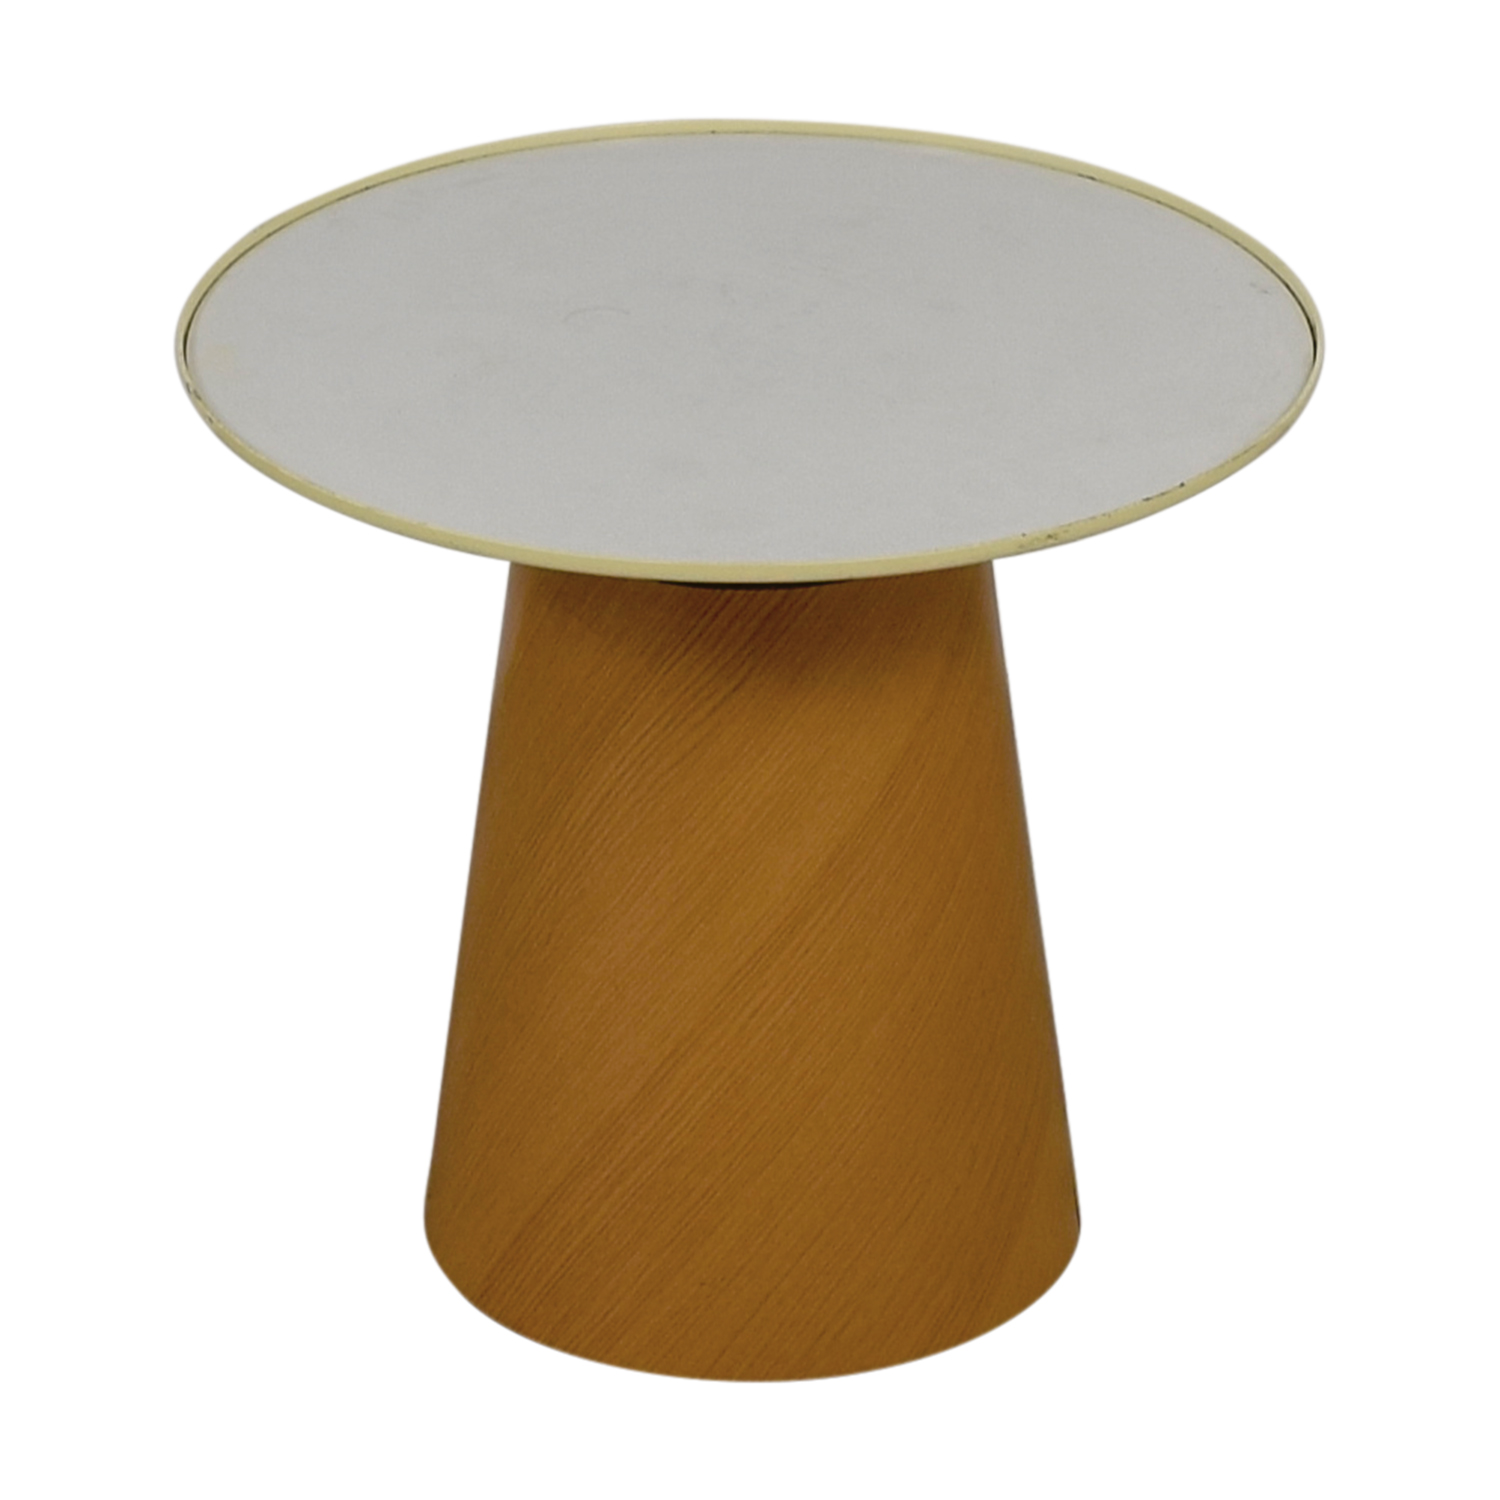 buy Steelcase Turnstone Steelcase Turnstone Campfire Paper Table in Warm Oak online